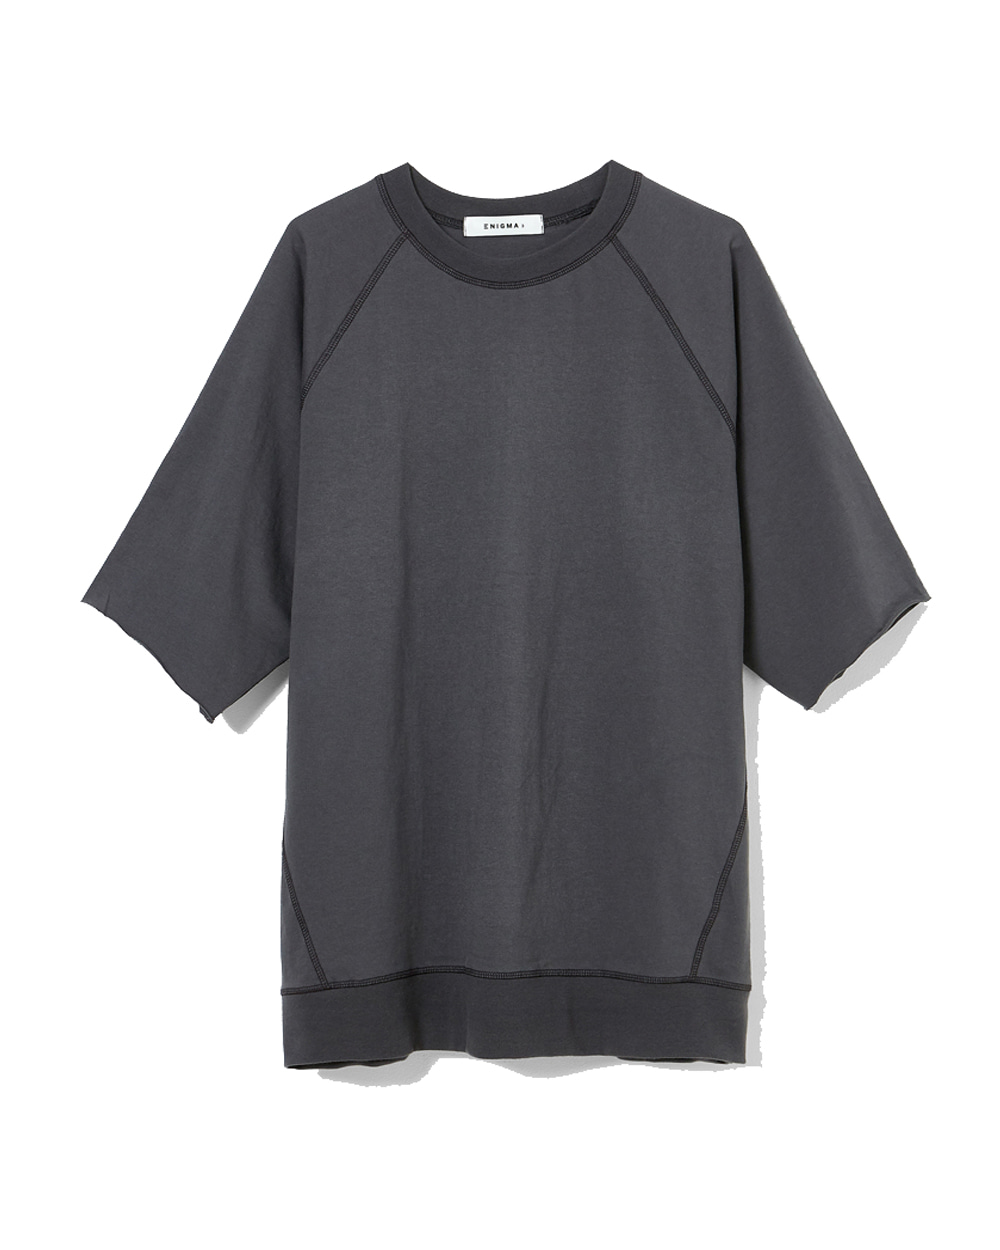 이니그마 Raglan Cut-off T-Shirt (Charcoal)